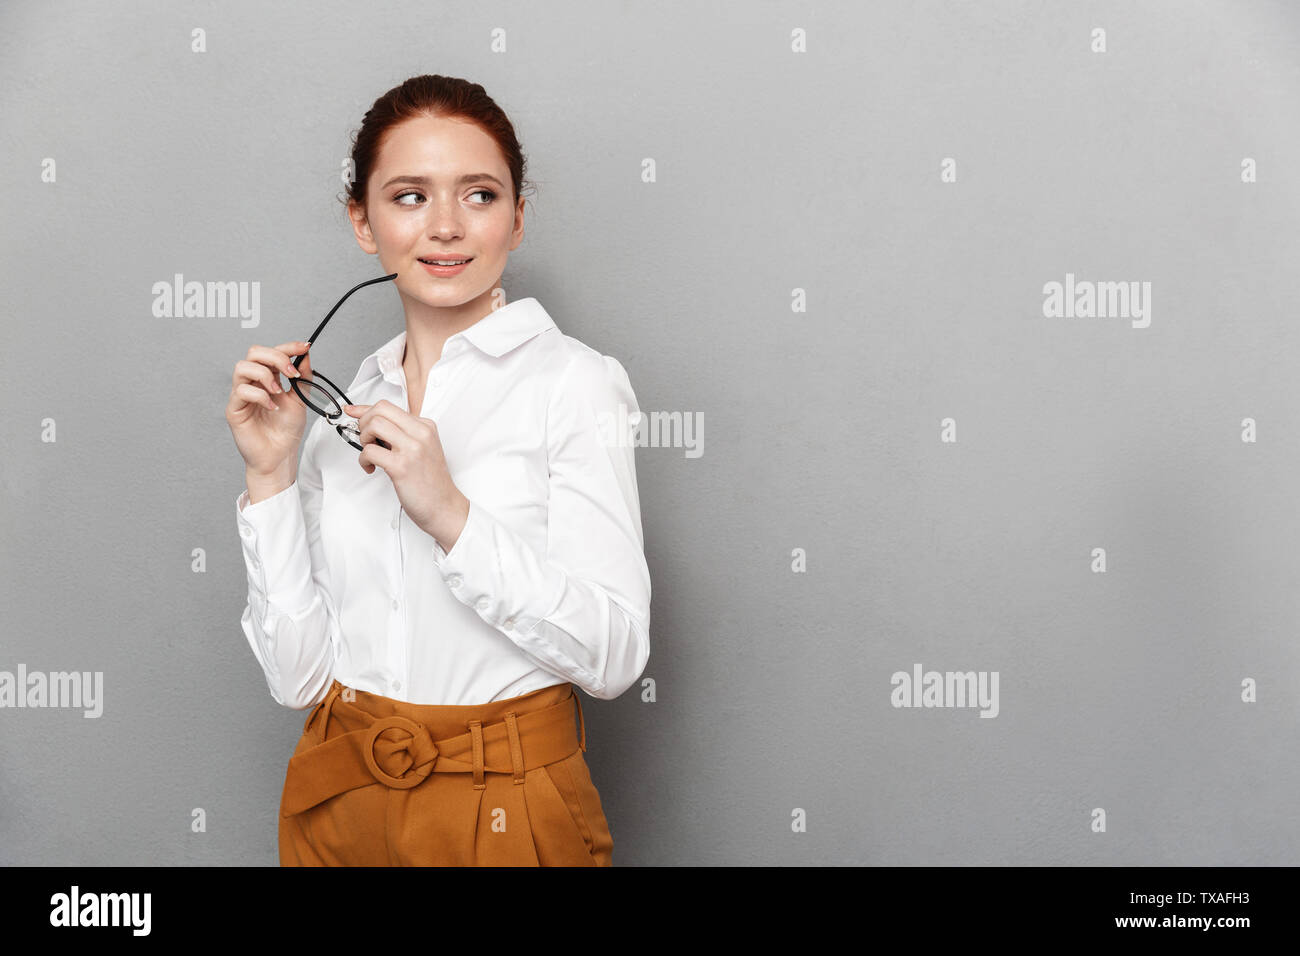 Portrait of successful redhead businesswoman 20s in formal wear holding eyeglasses and smiling at camera in office isolated over gray background - Stock Image